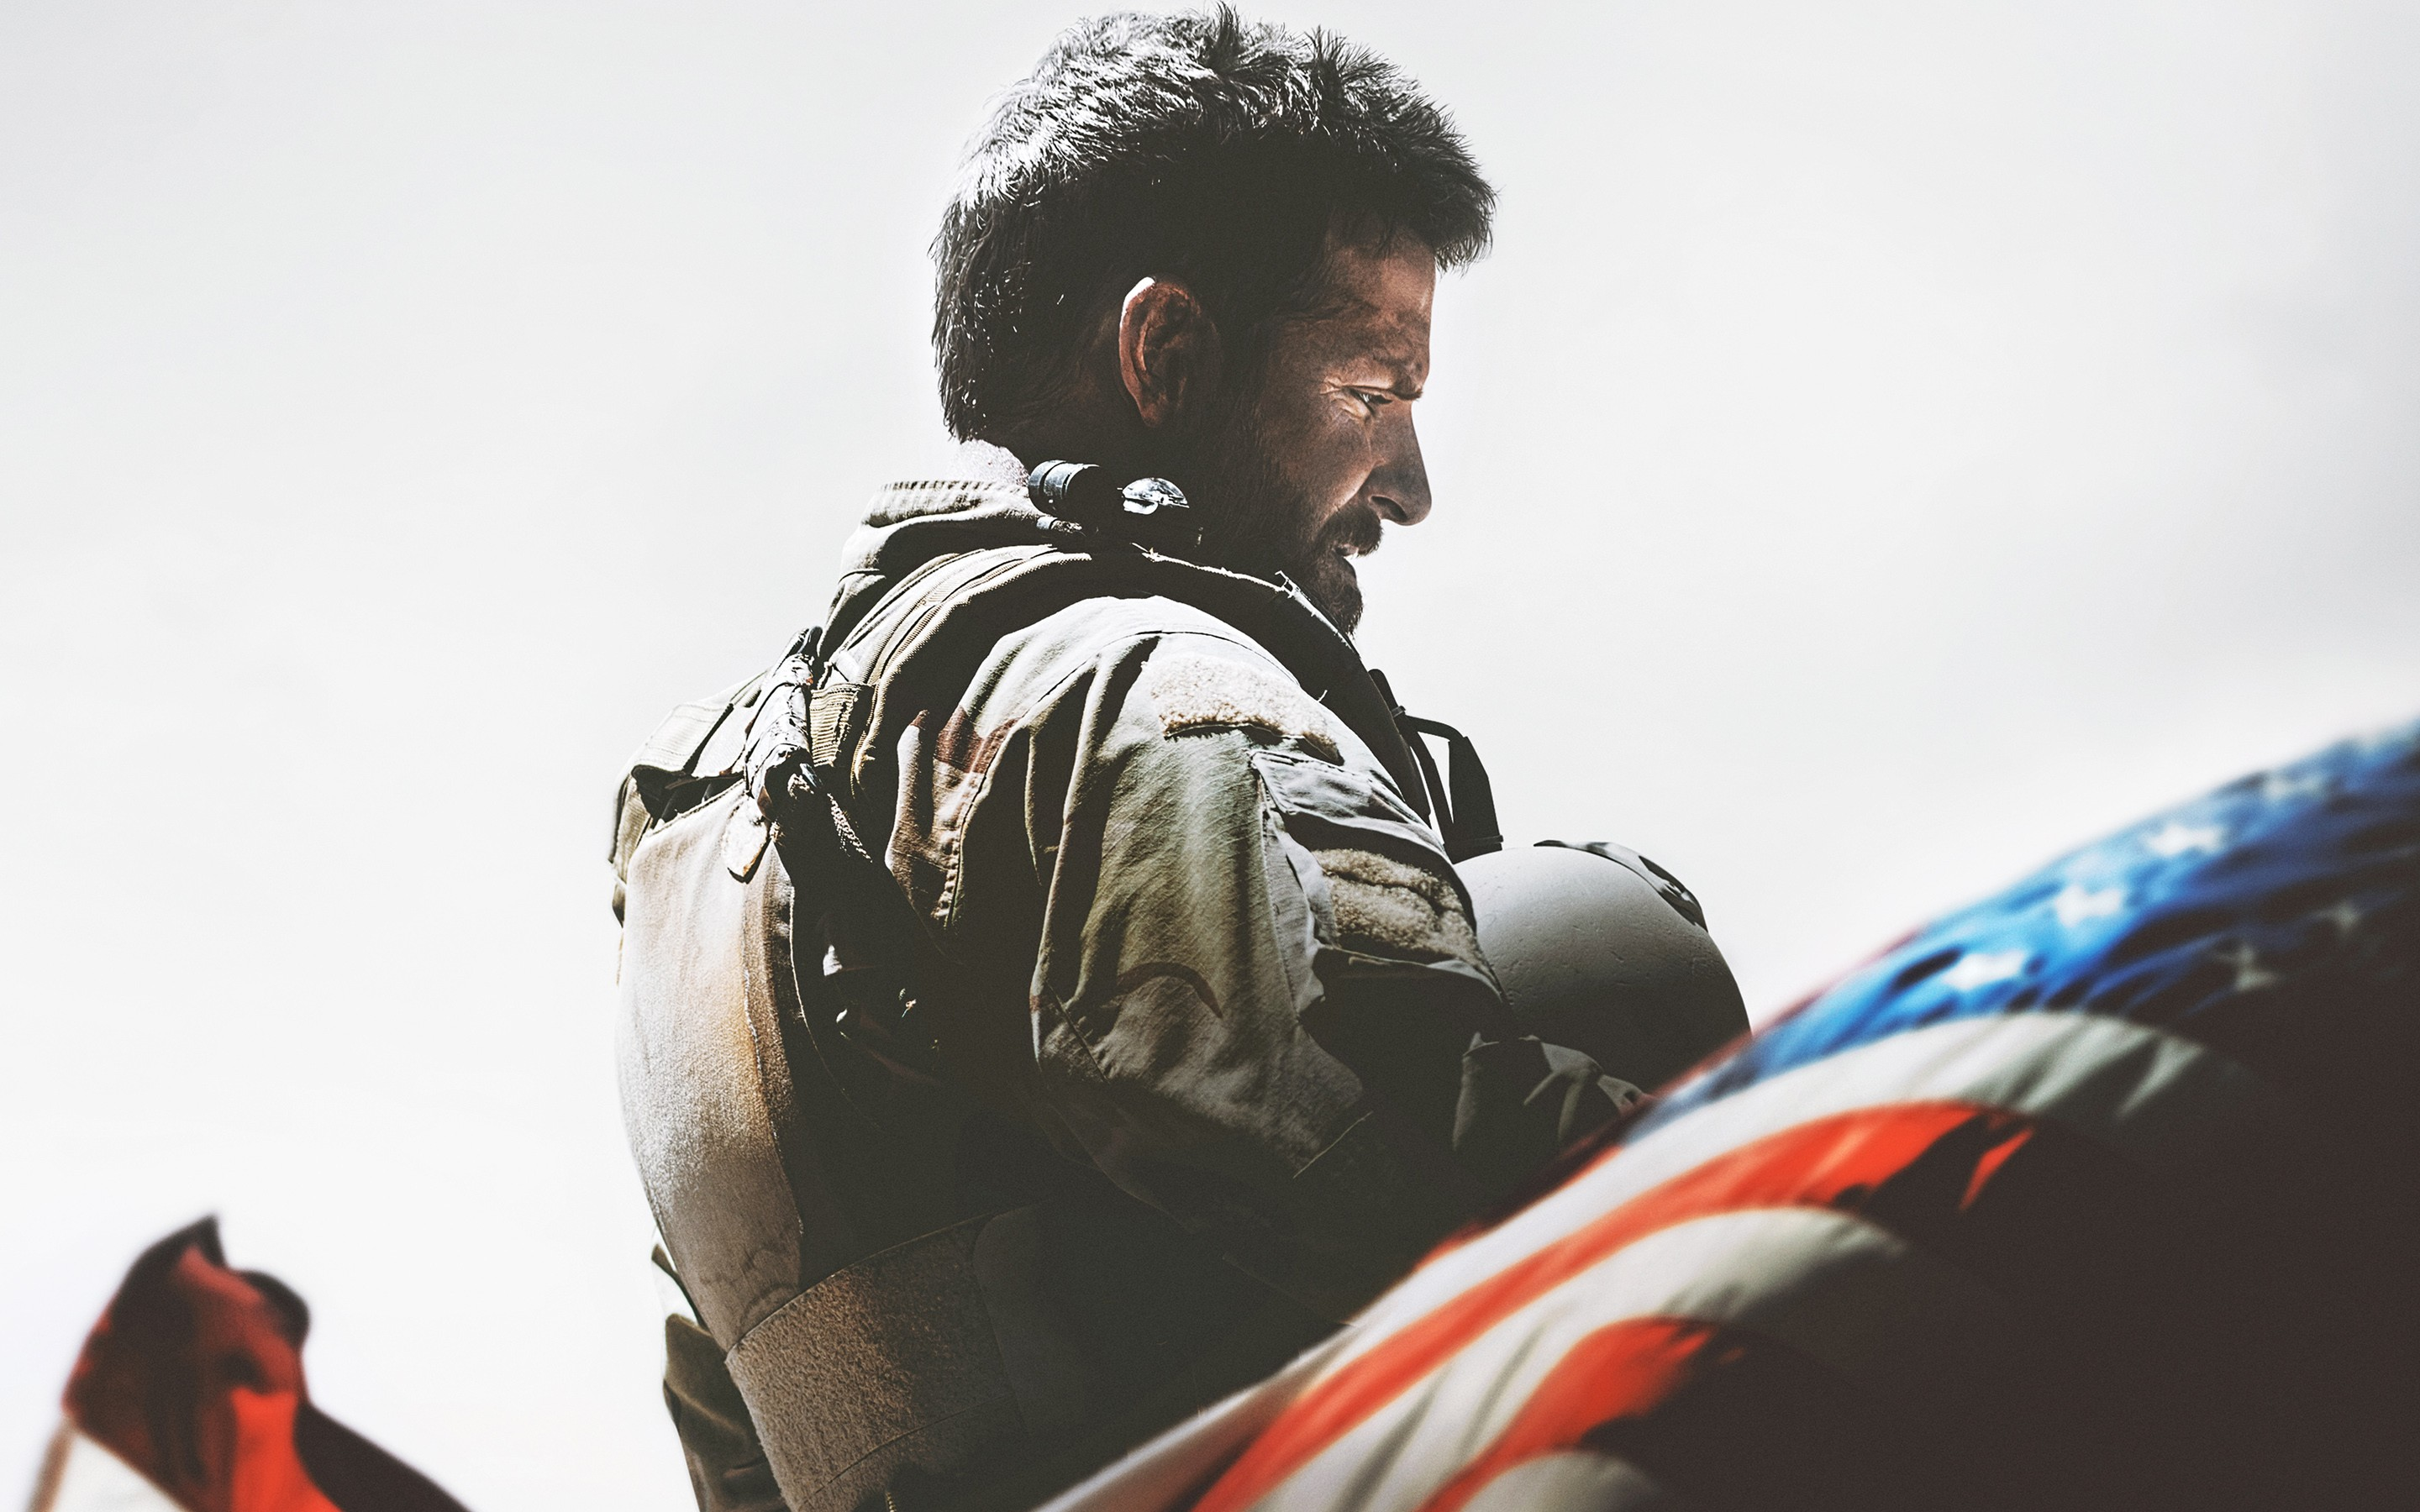 3d Wallpaper 800x1280 American Sniper Movie Hd Movies 4k Wallpapers Images